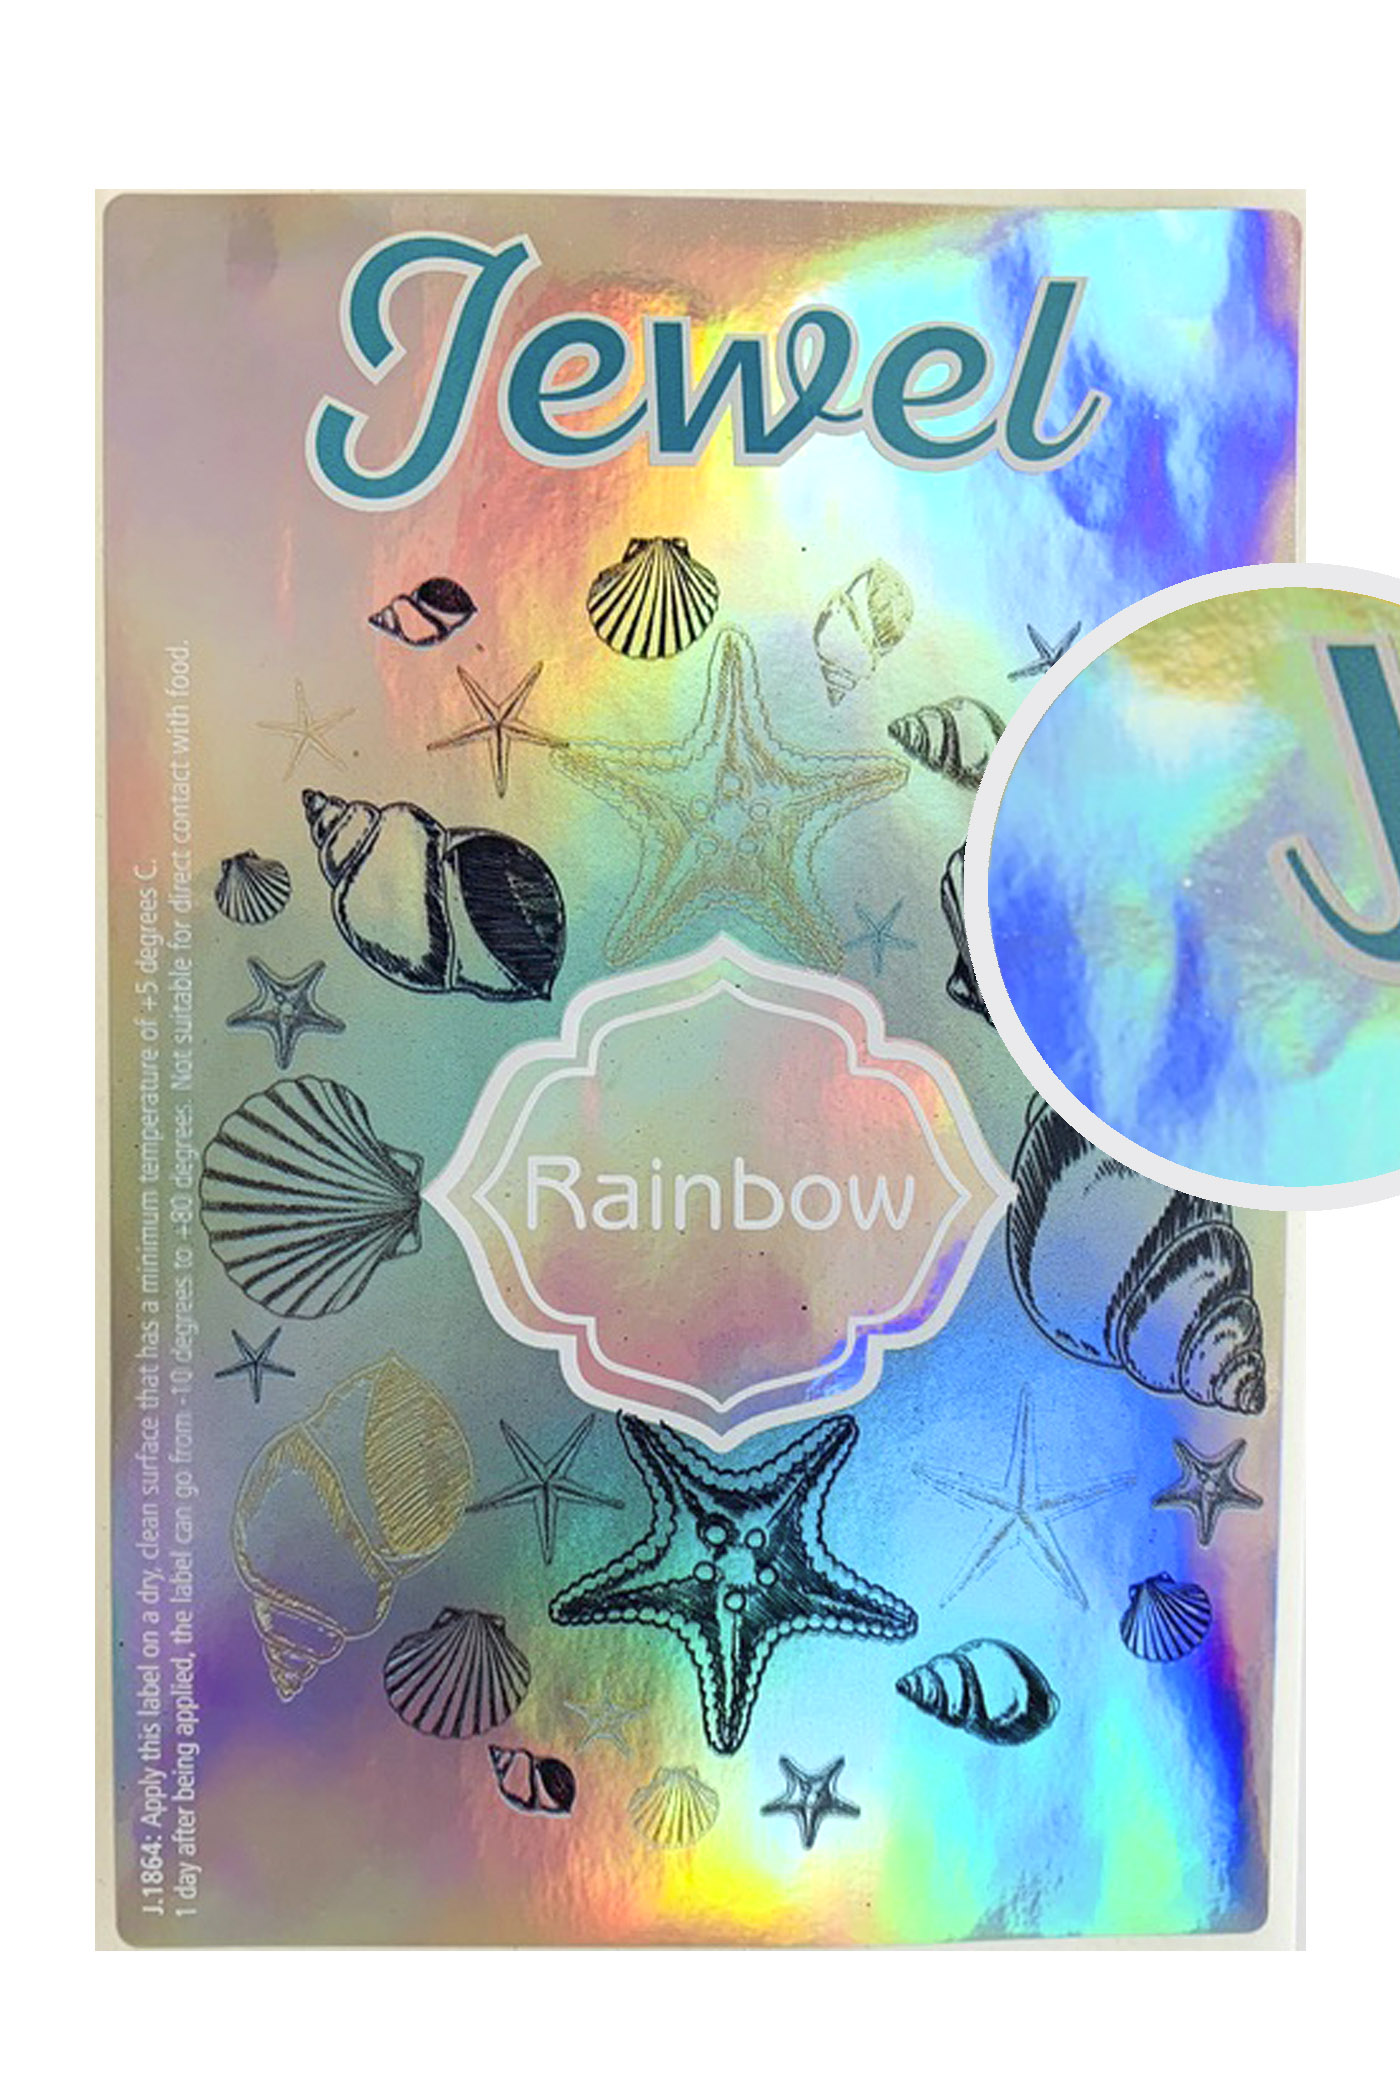 Label jewel rainbow